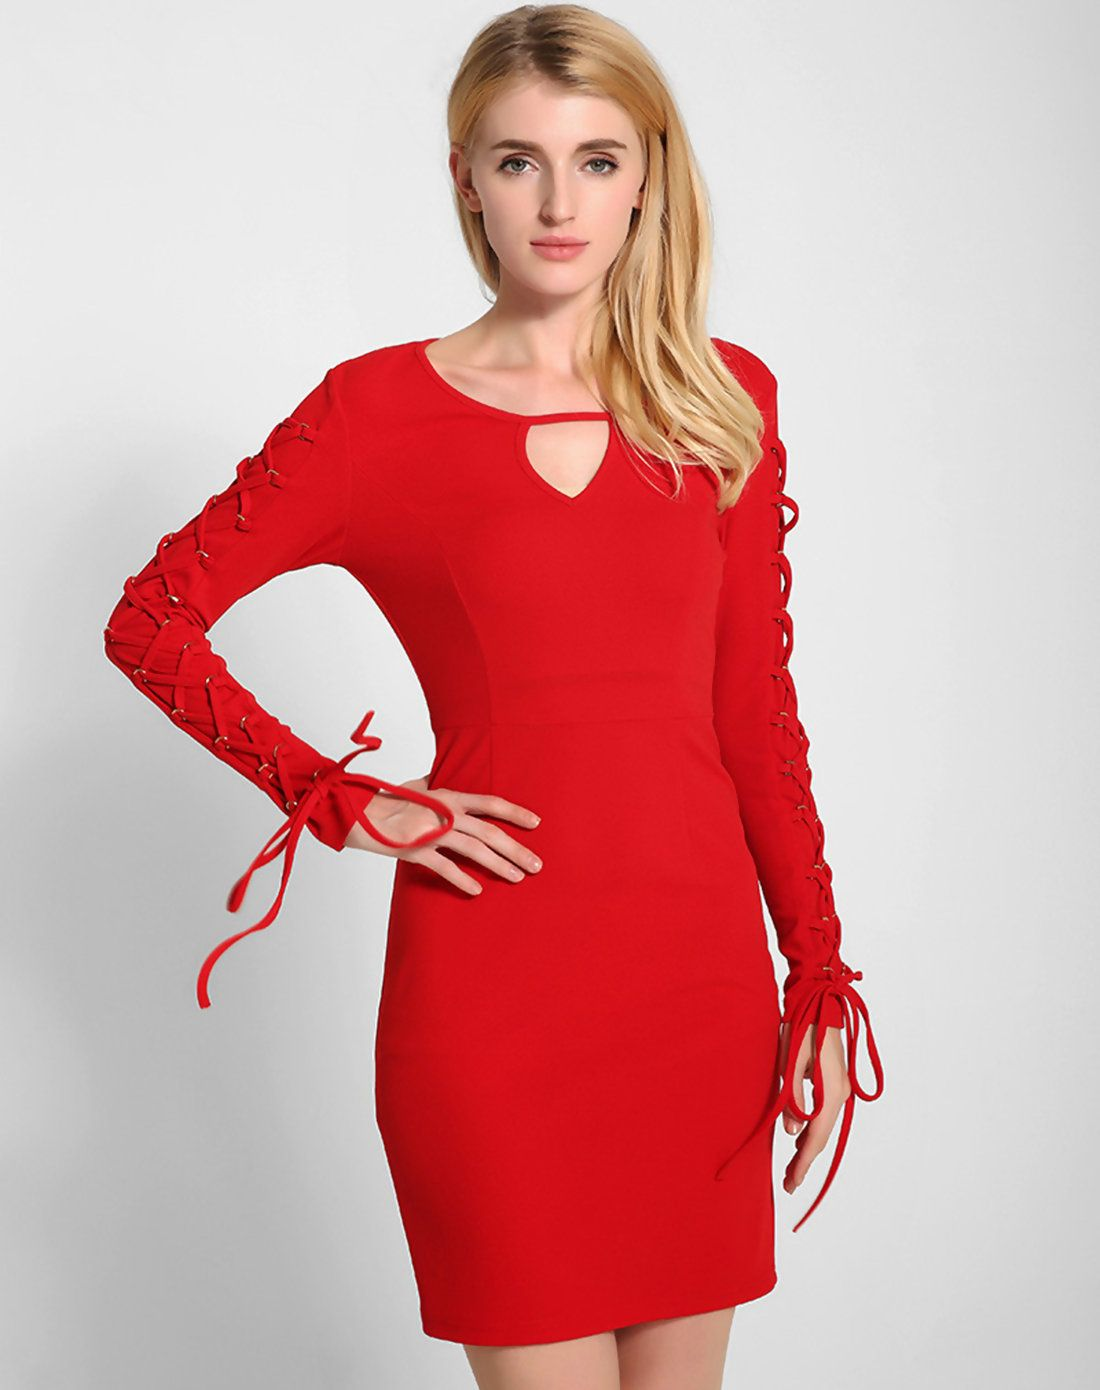 Adorewe vipme sweater dresses lztlylzt red v neck sexy bodycon